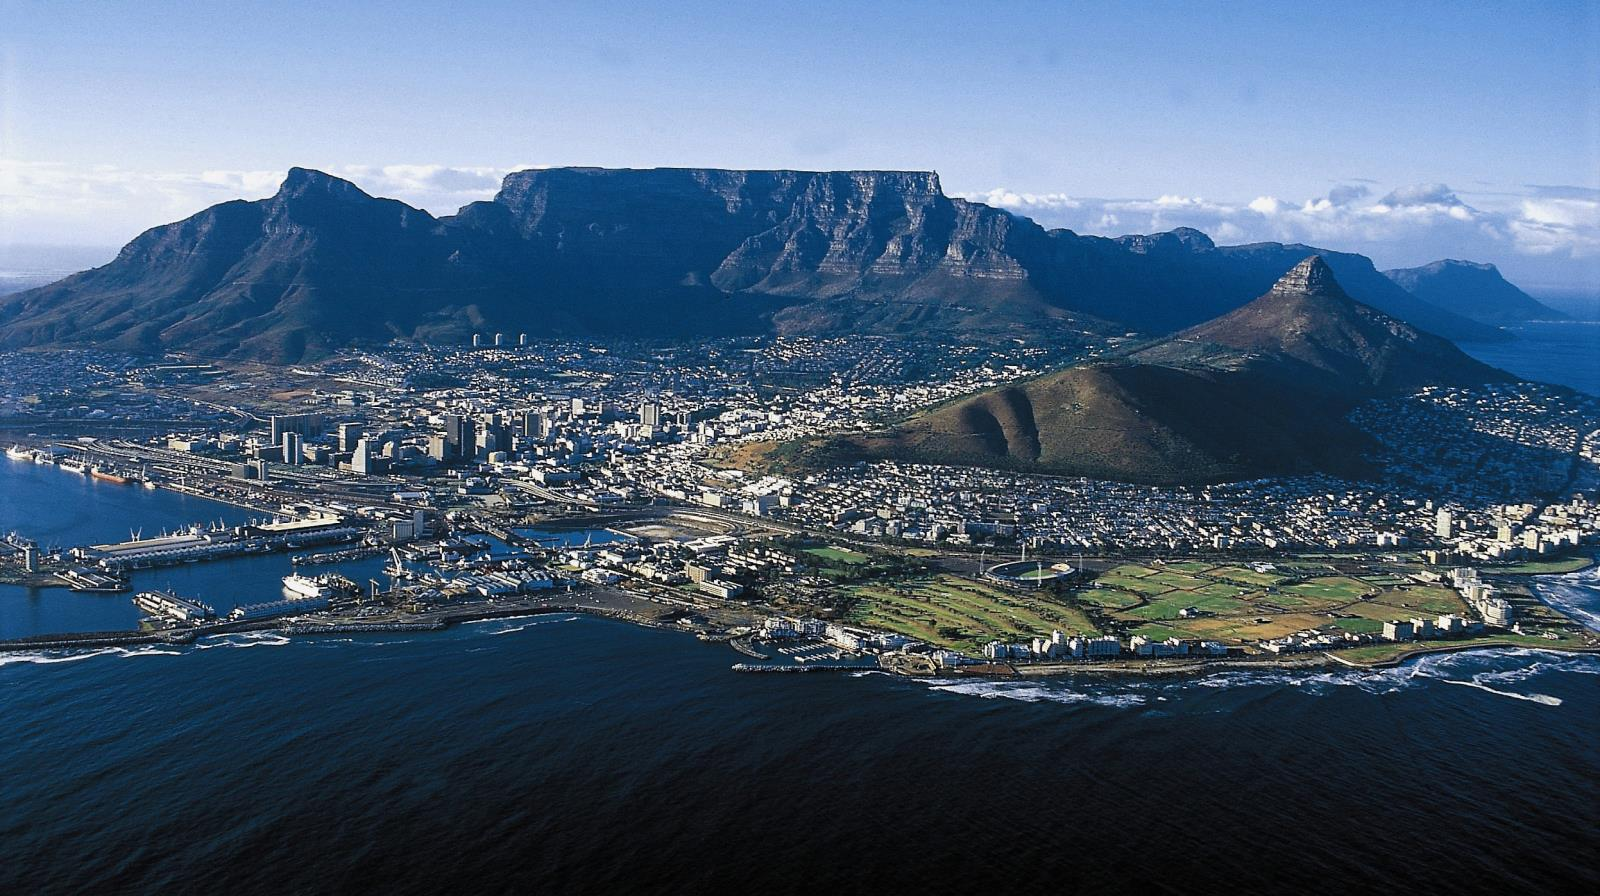 TableMountainCropped2.jpg